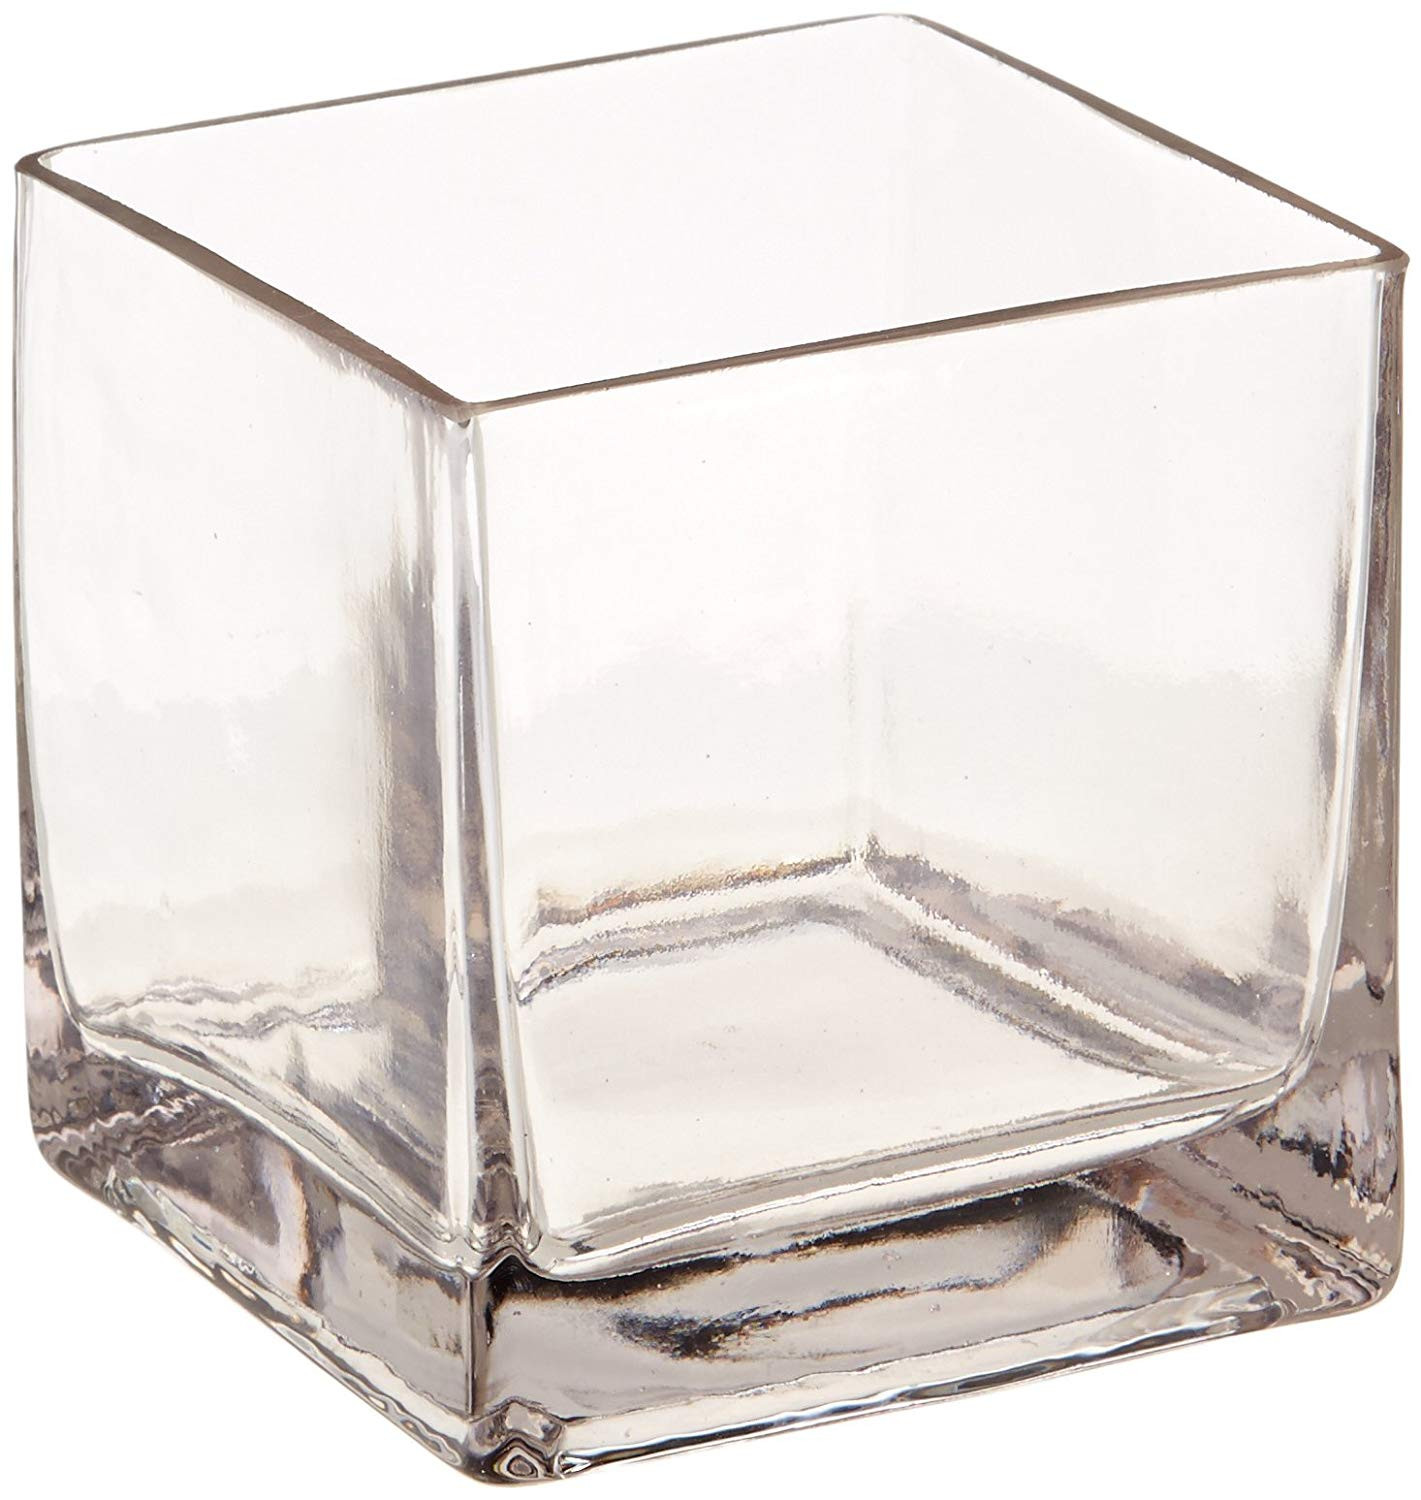 square glass vases cheap of amazon com 12piece 4 square crystal clear glass vase home kitchen with 71 jezfmvnl sl1500